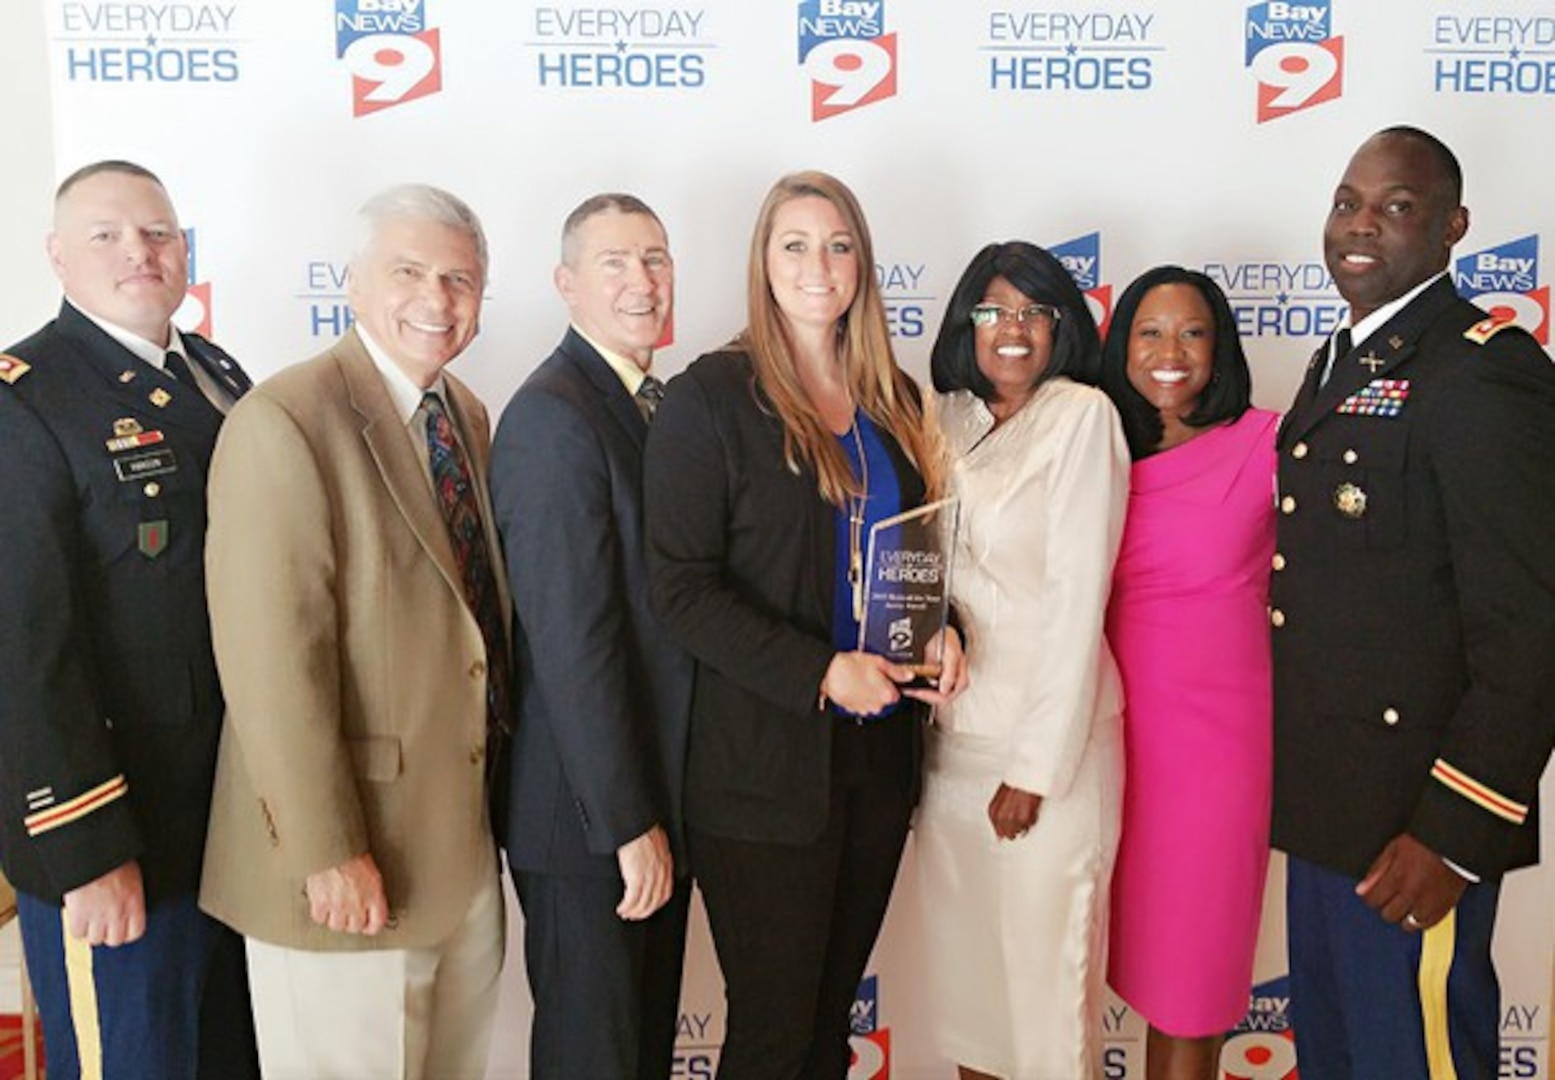 """U.S. Army Reserve 1st Lt. Jessica Purcell (center) receives local area news station Bay News 9's """"2015 Hero of the Year"""" award during a ceremony. Purcell played a key role in the rescue of a 43-year-old Bradenton resident last year. (Photo courtesy of Bay News 9)"""